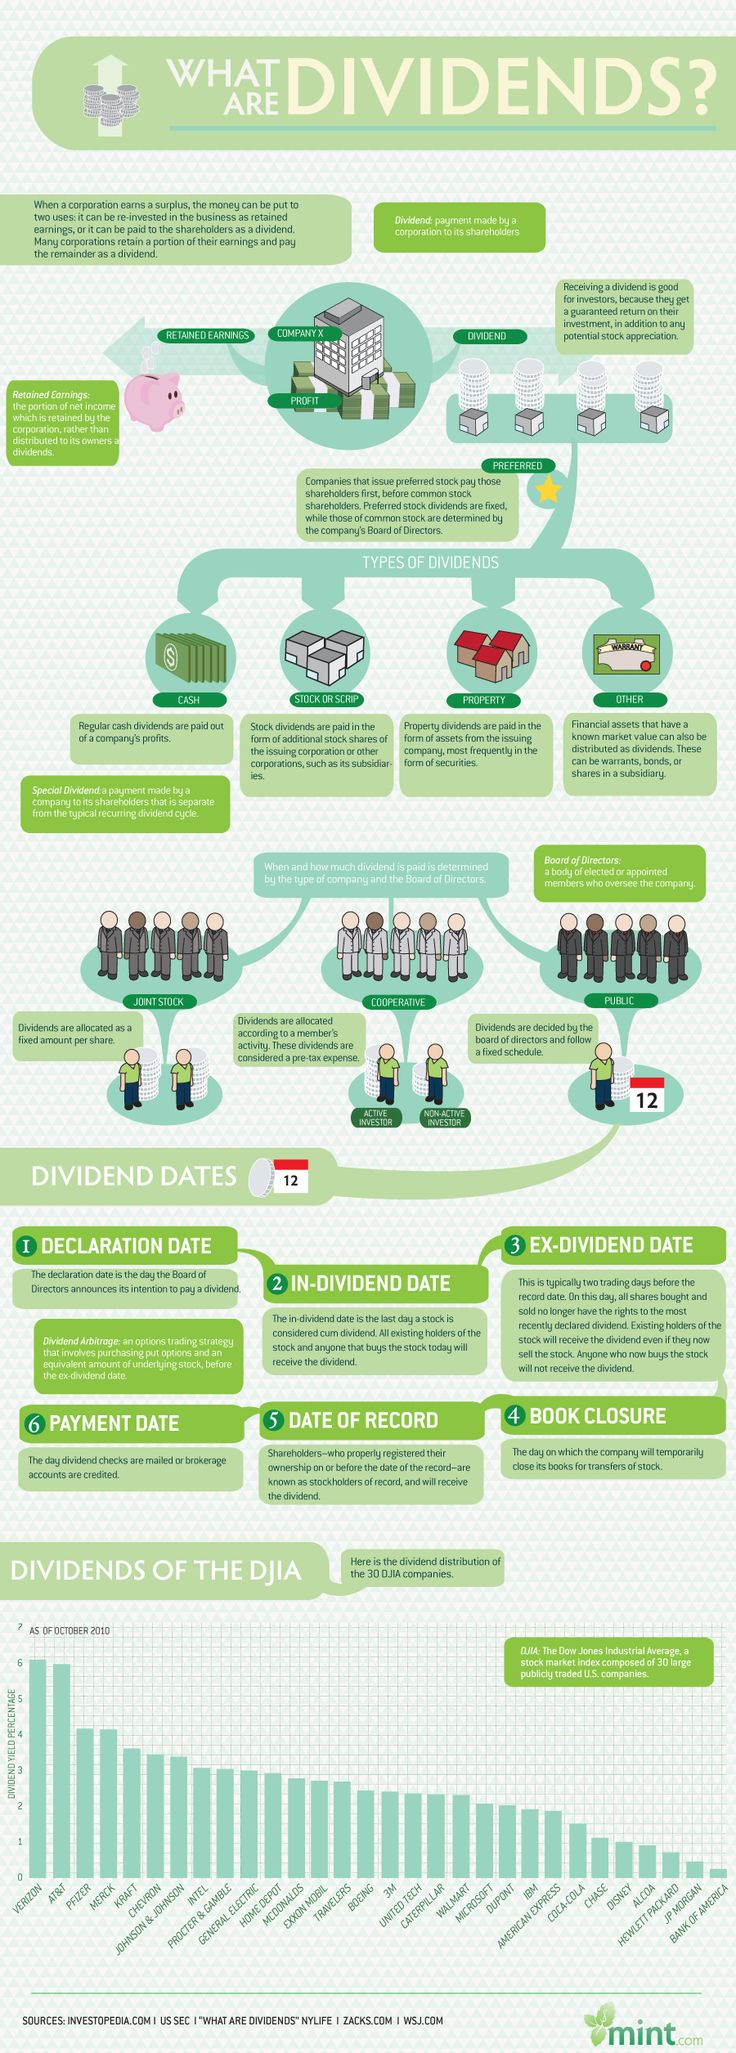 Nice infographic how dividends work, where do they come from. A brief overview of the system